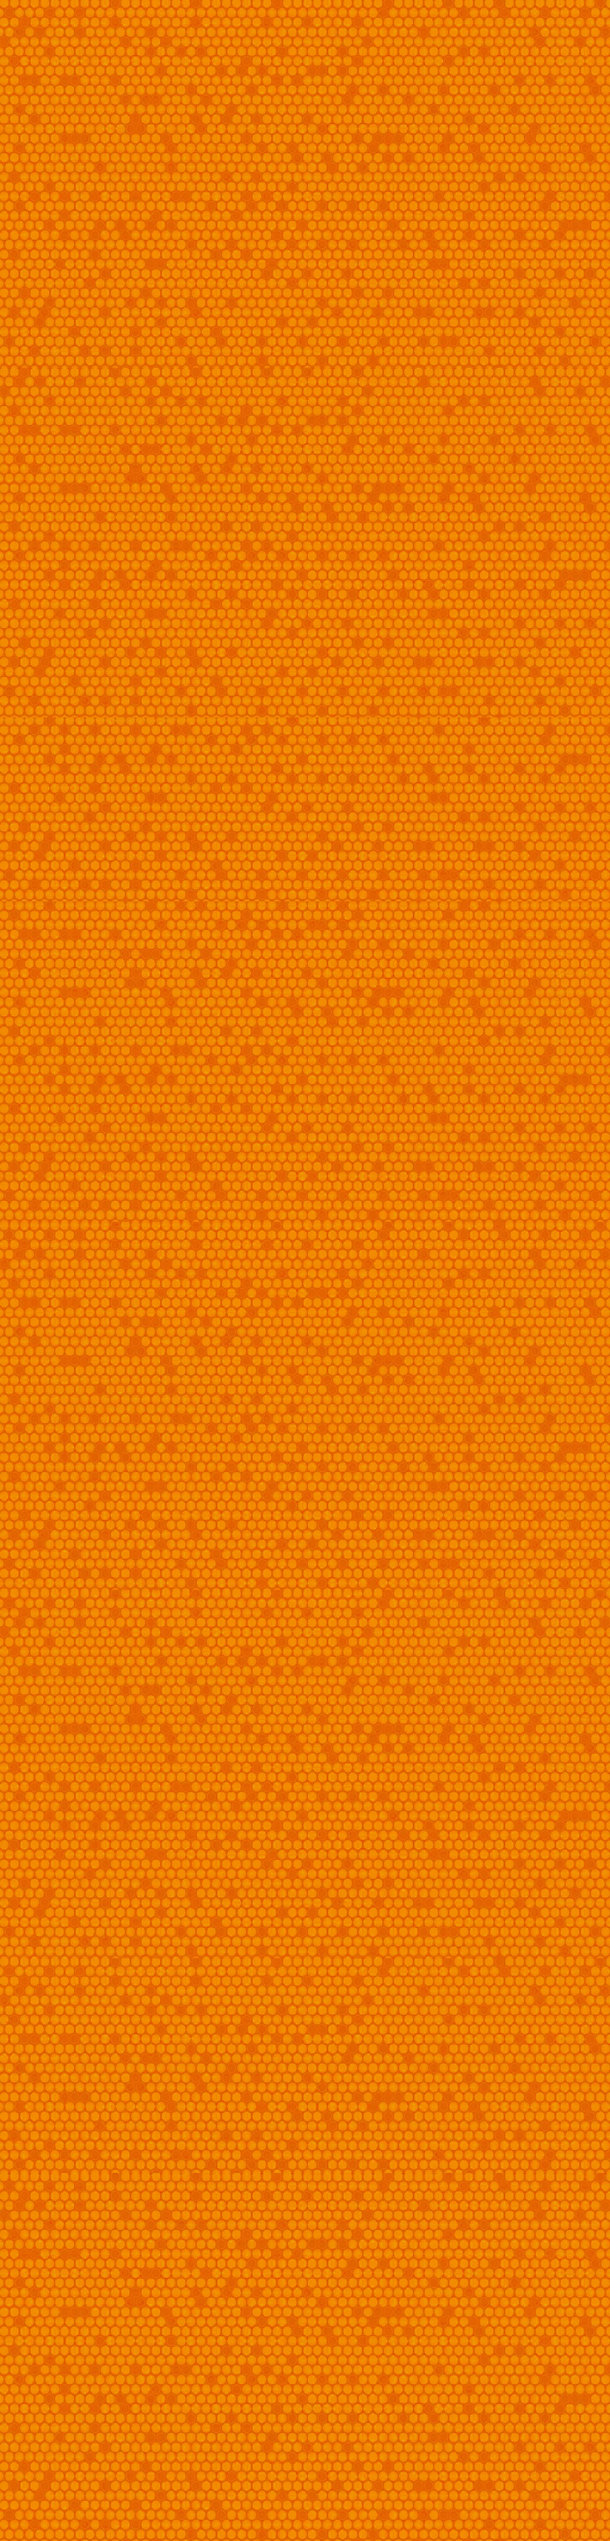 simplifiArtbackgroundnaranja.jpg